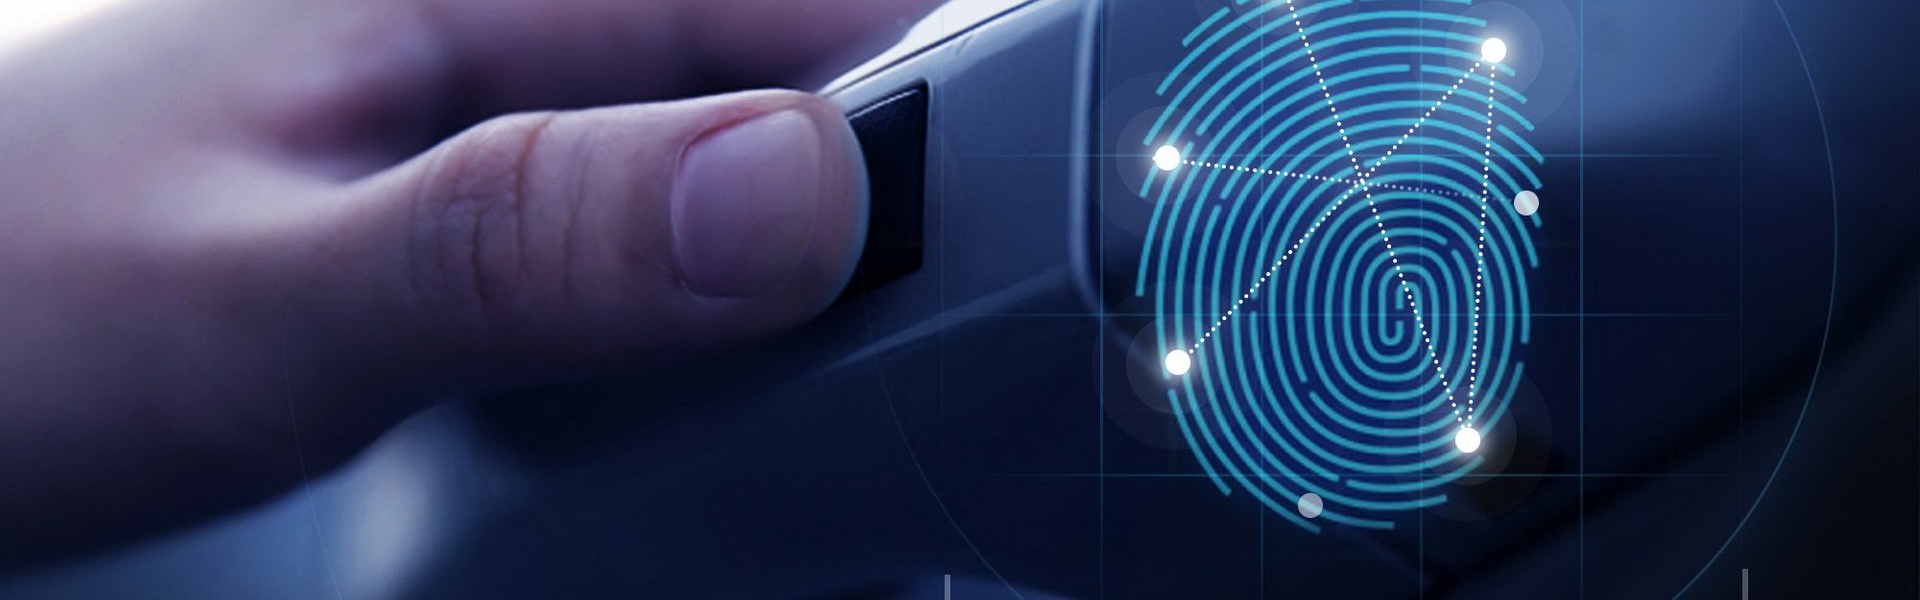 hyundai-fingerprint-technology_01.jpg